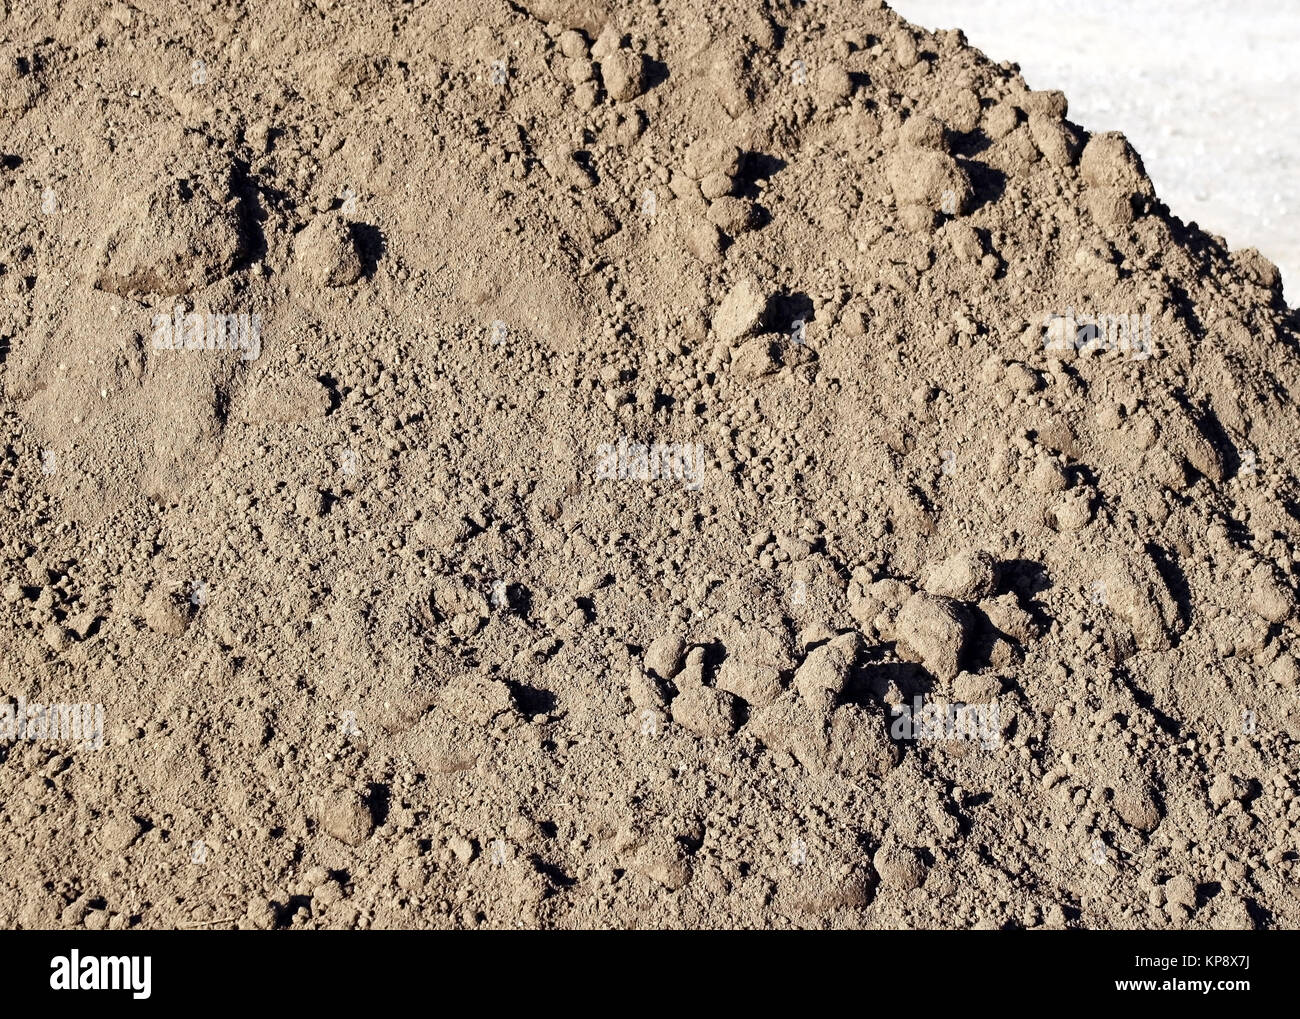 Close up of dirt pile - clean fill - Stock Image